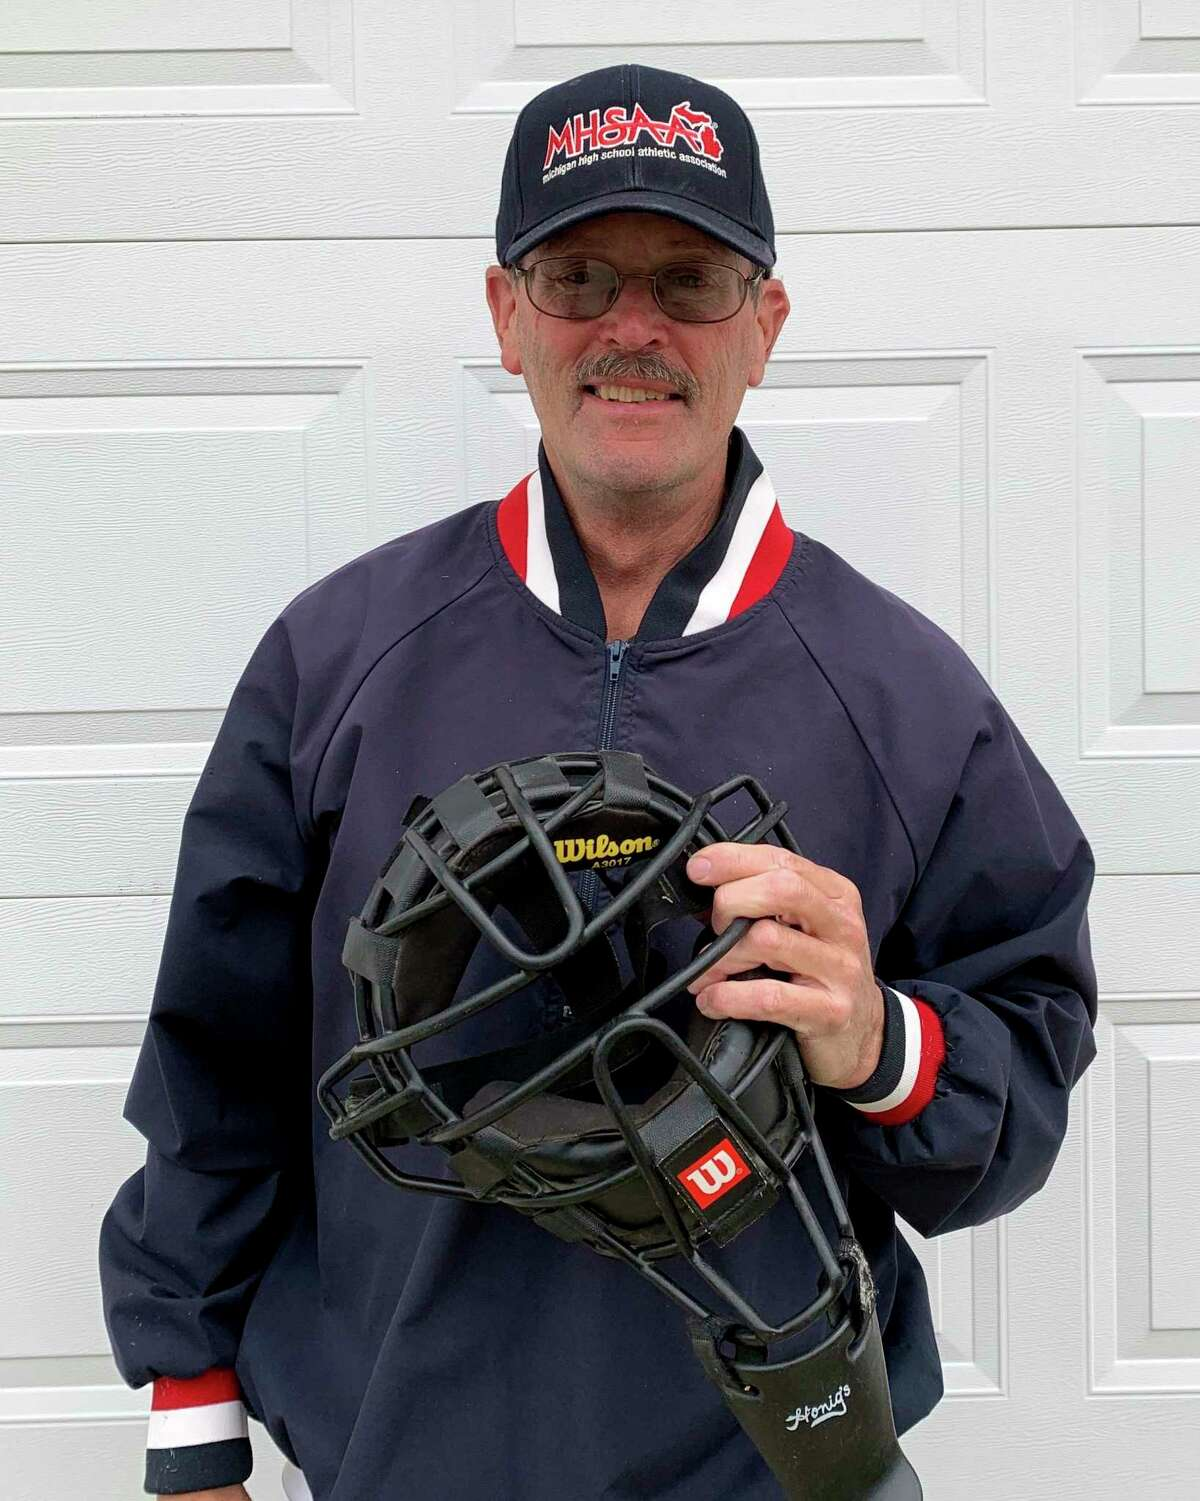 Local umpire Kevin Courtney said misses getting out on the diamond from spring through summer. (Courtesy photo/Kevin Courtney)